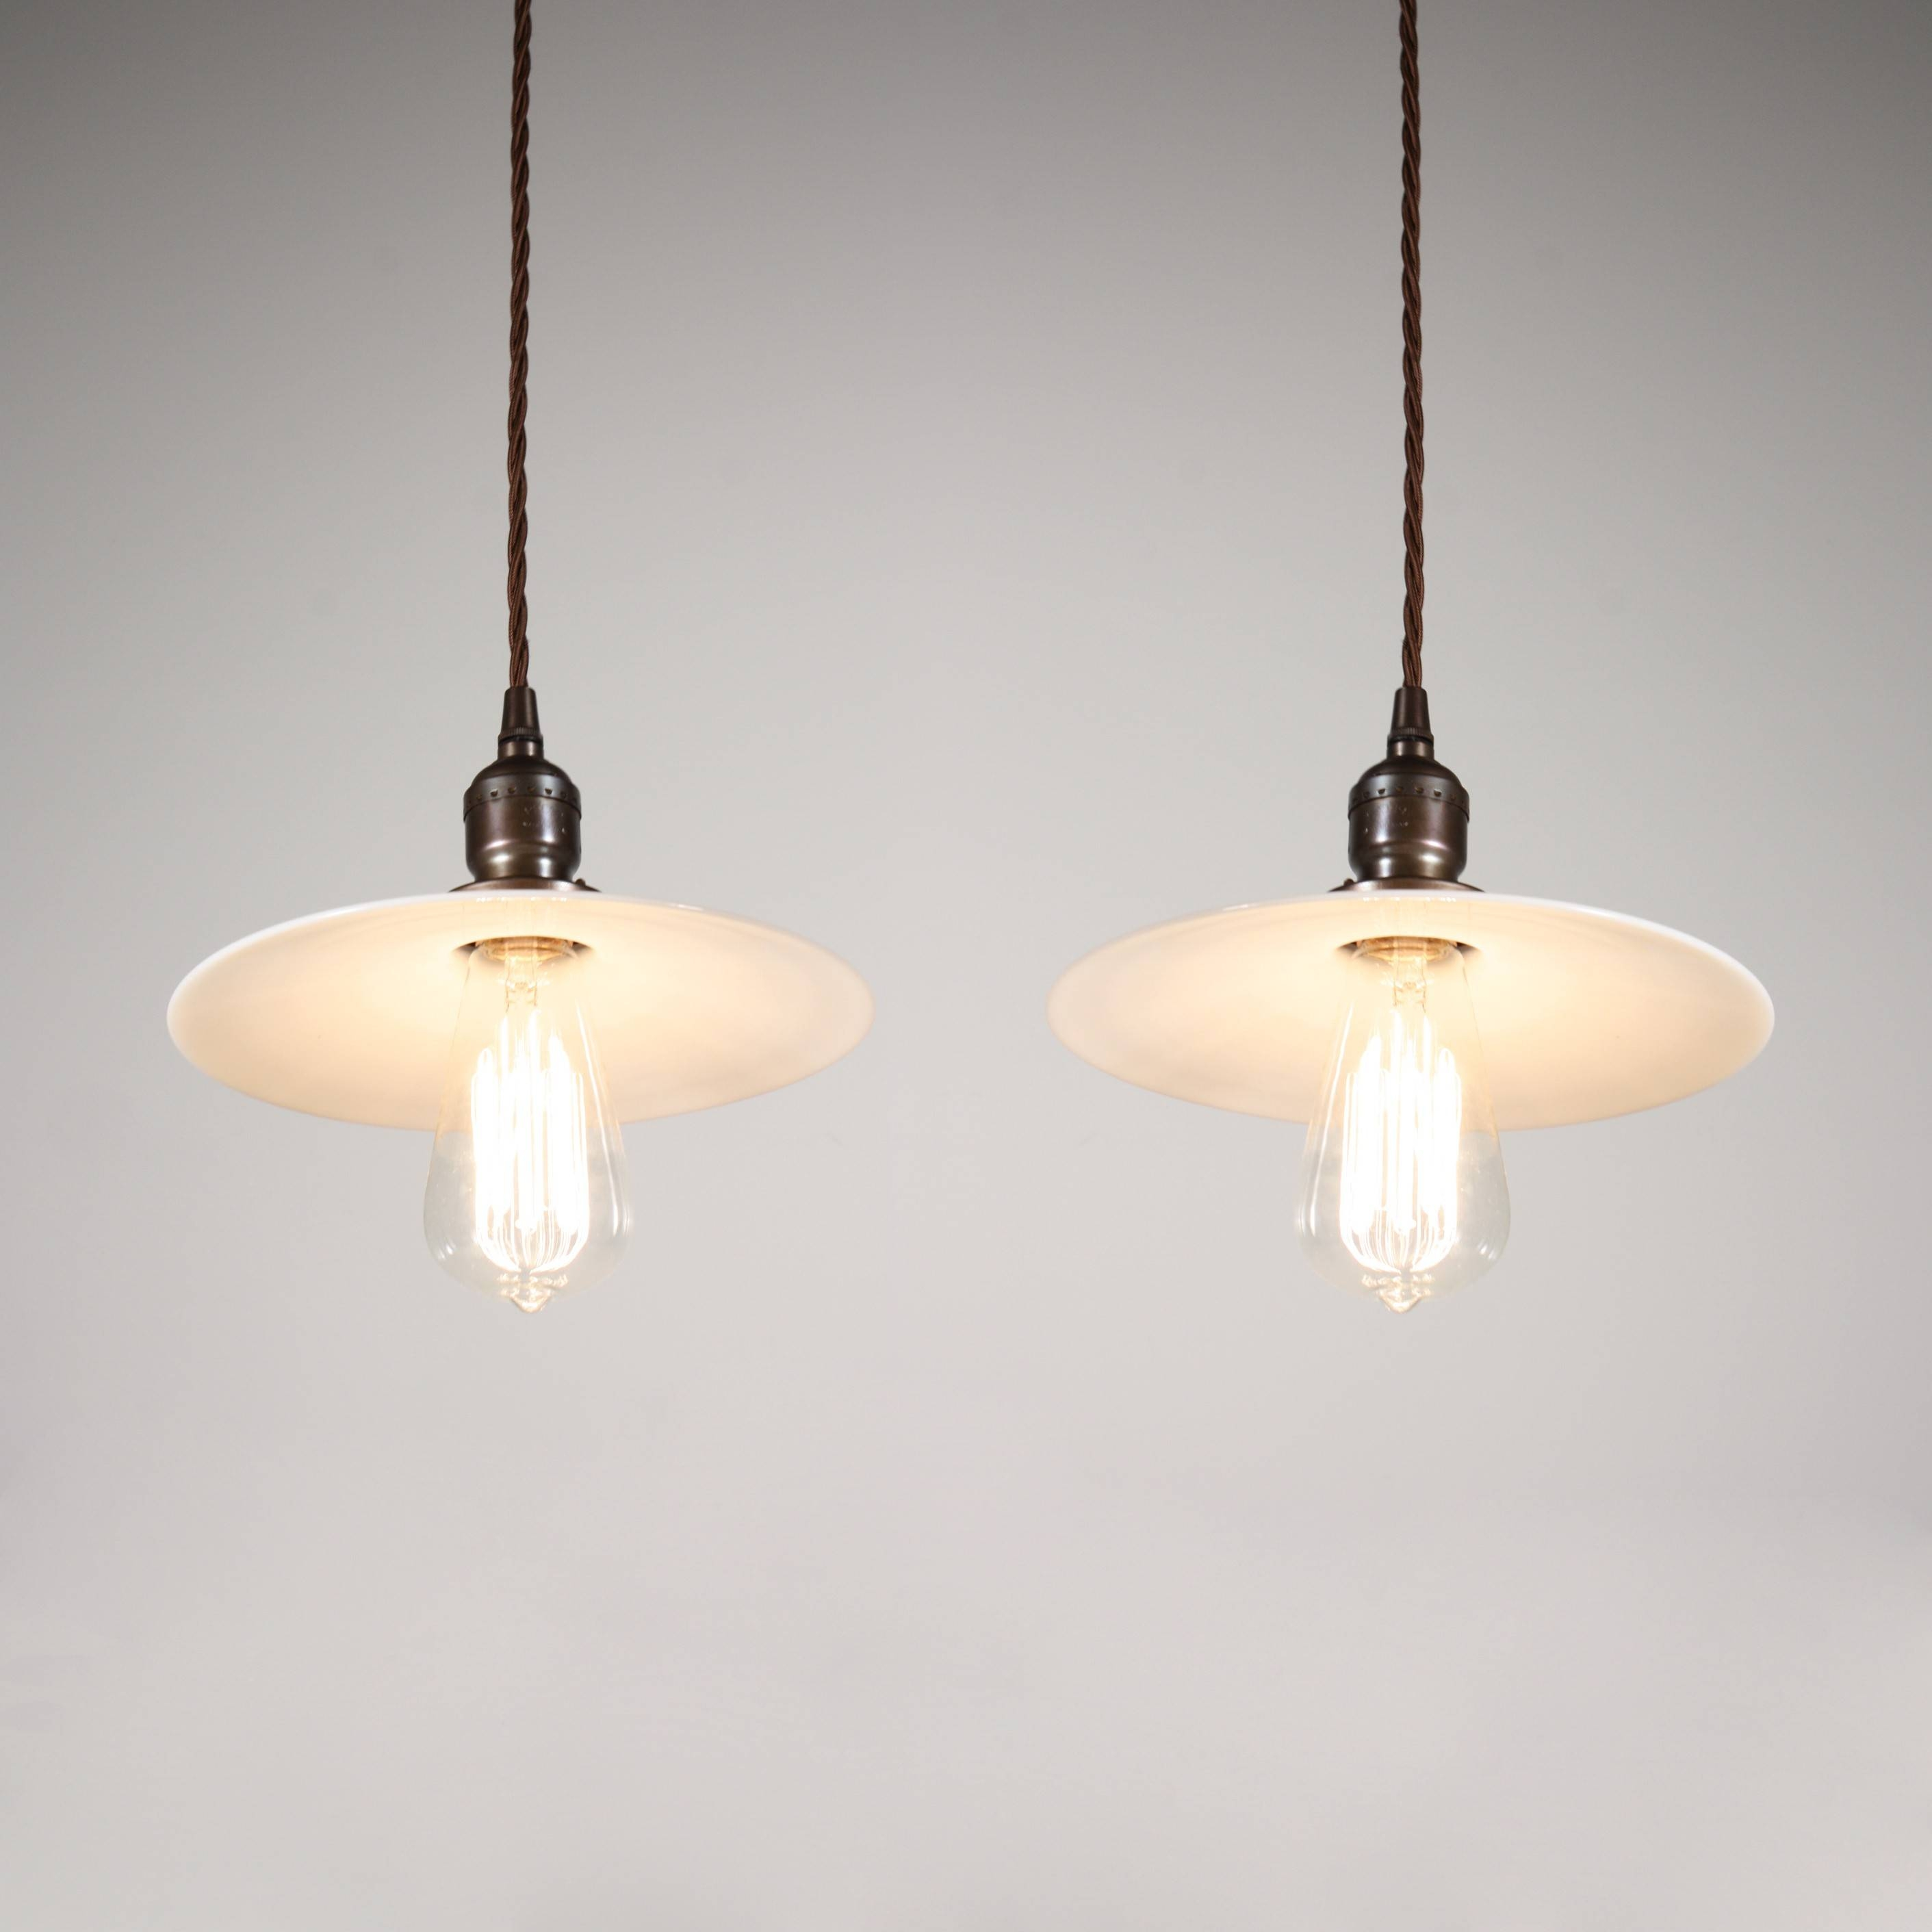 Two Matching Antique Industrial Pendant Lights With Milk Glass in Milk Glass Pendant Lights Fixtures (Image 14 of 15)